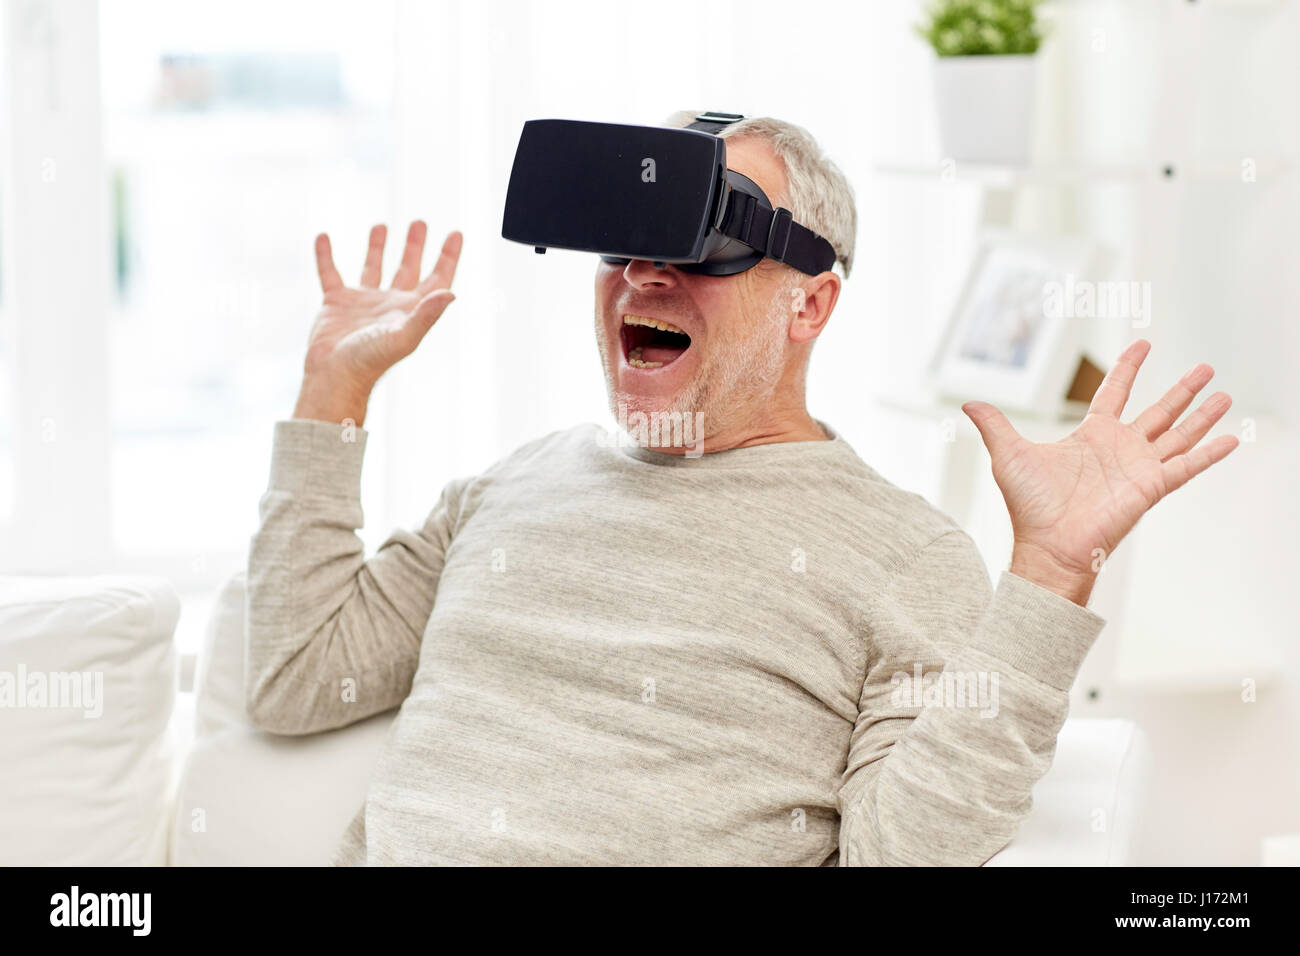 e471d57f459 old man in virtual reality headset or 3d glasses Stock Photo ...